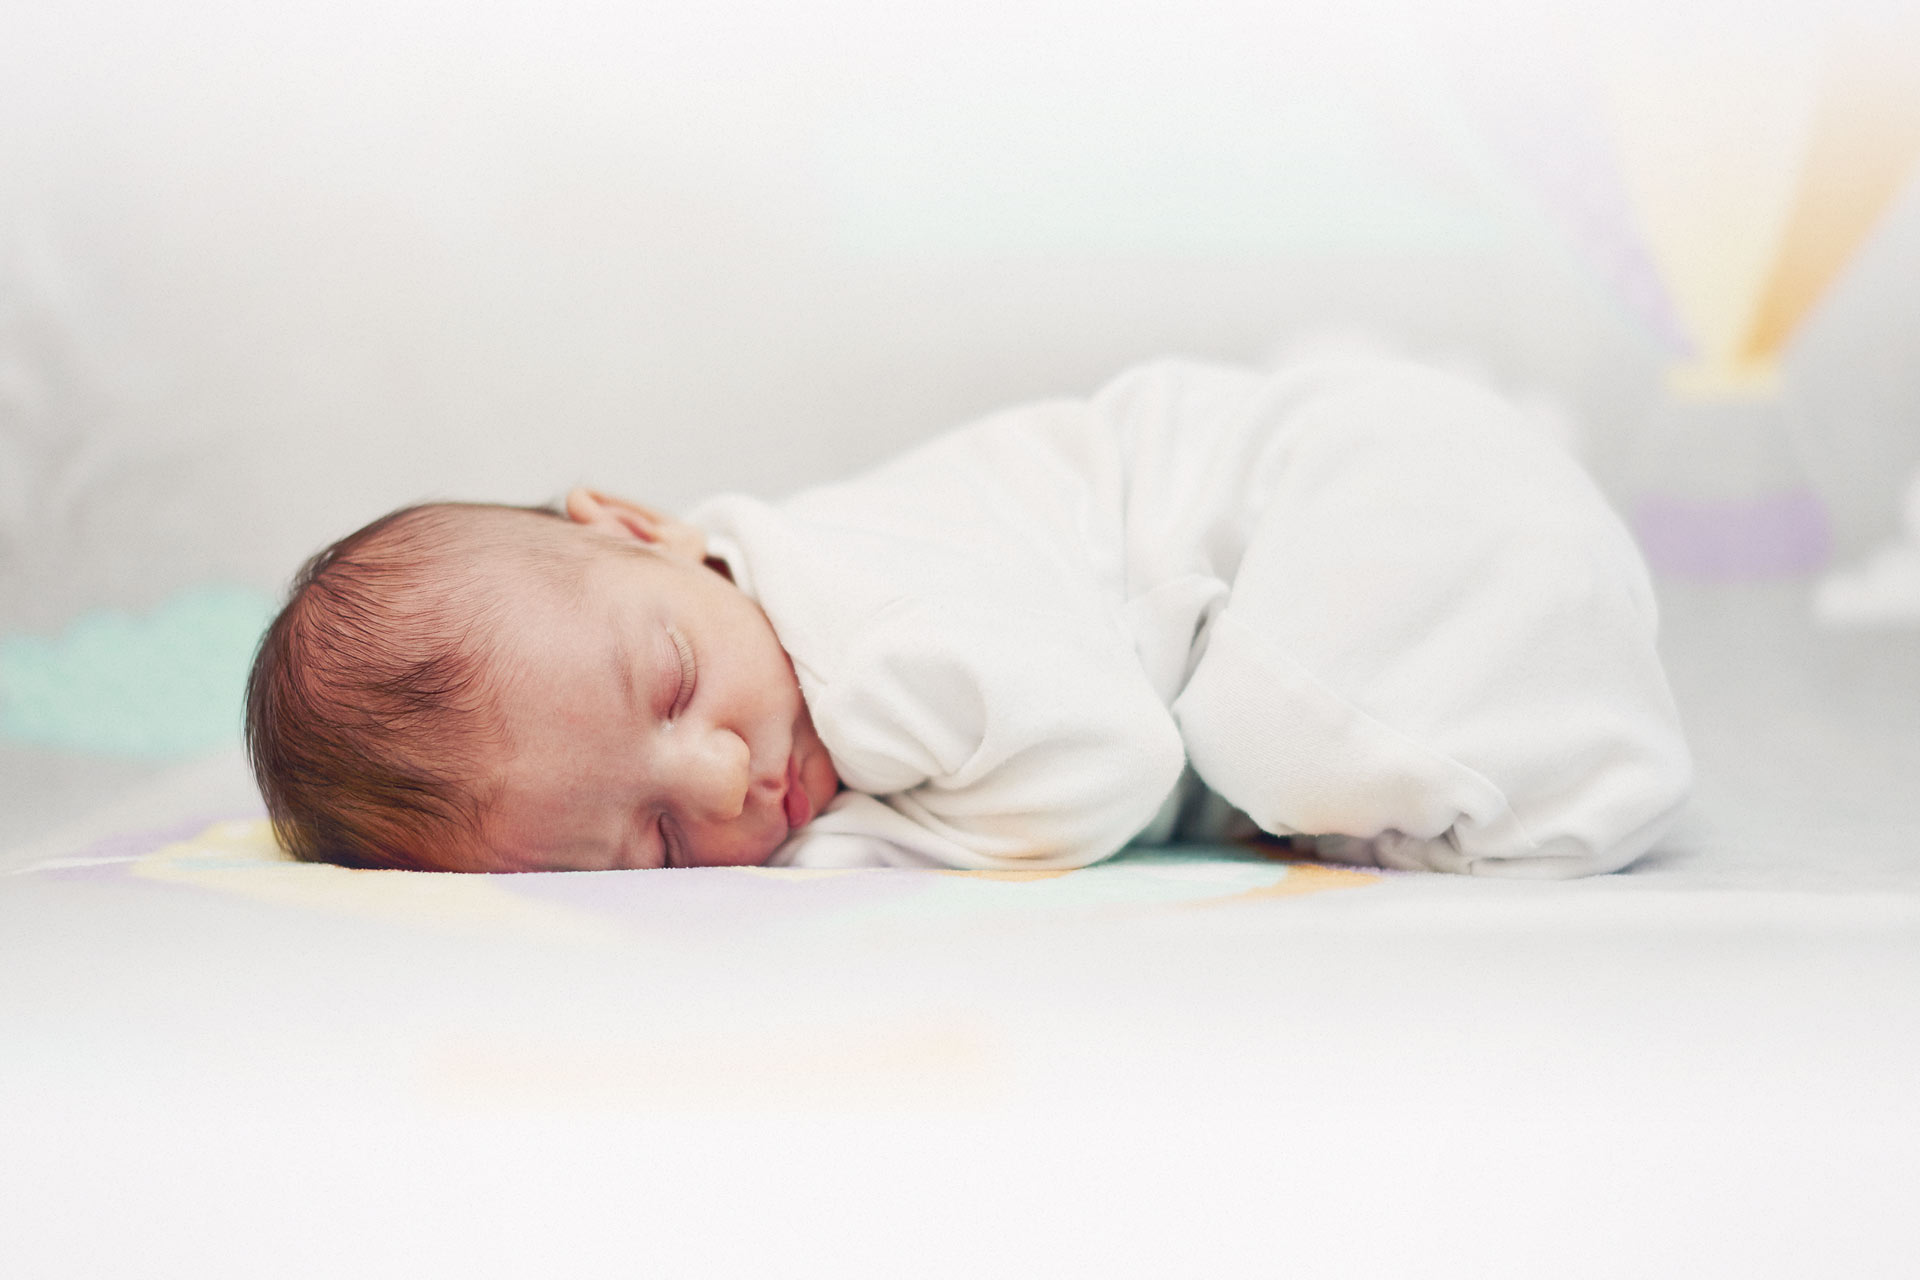 Newborn Baby Portrait Photography in Ipswich